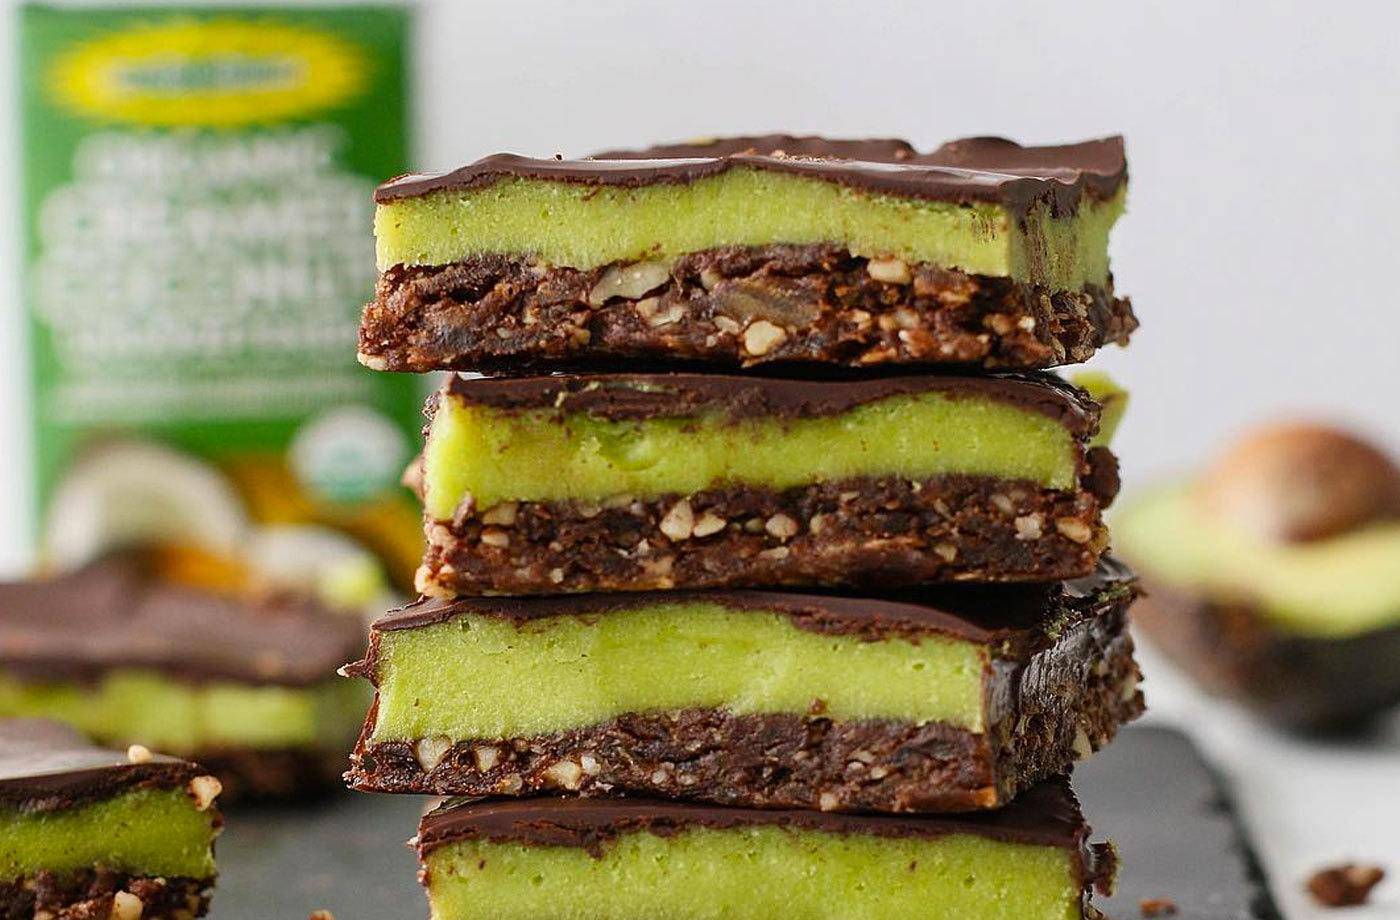 Thumbnail for These chocolate avocado bars are the savory-sweet treat you need in your life